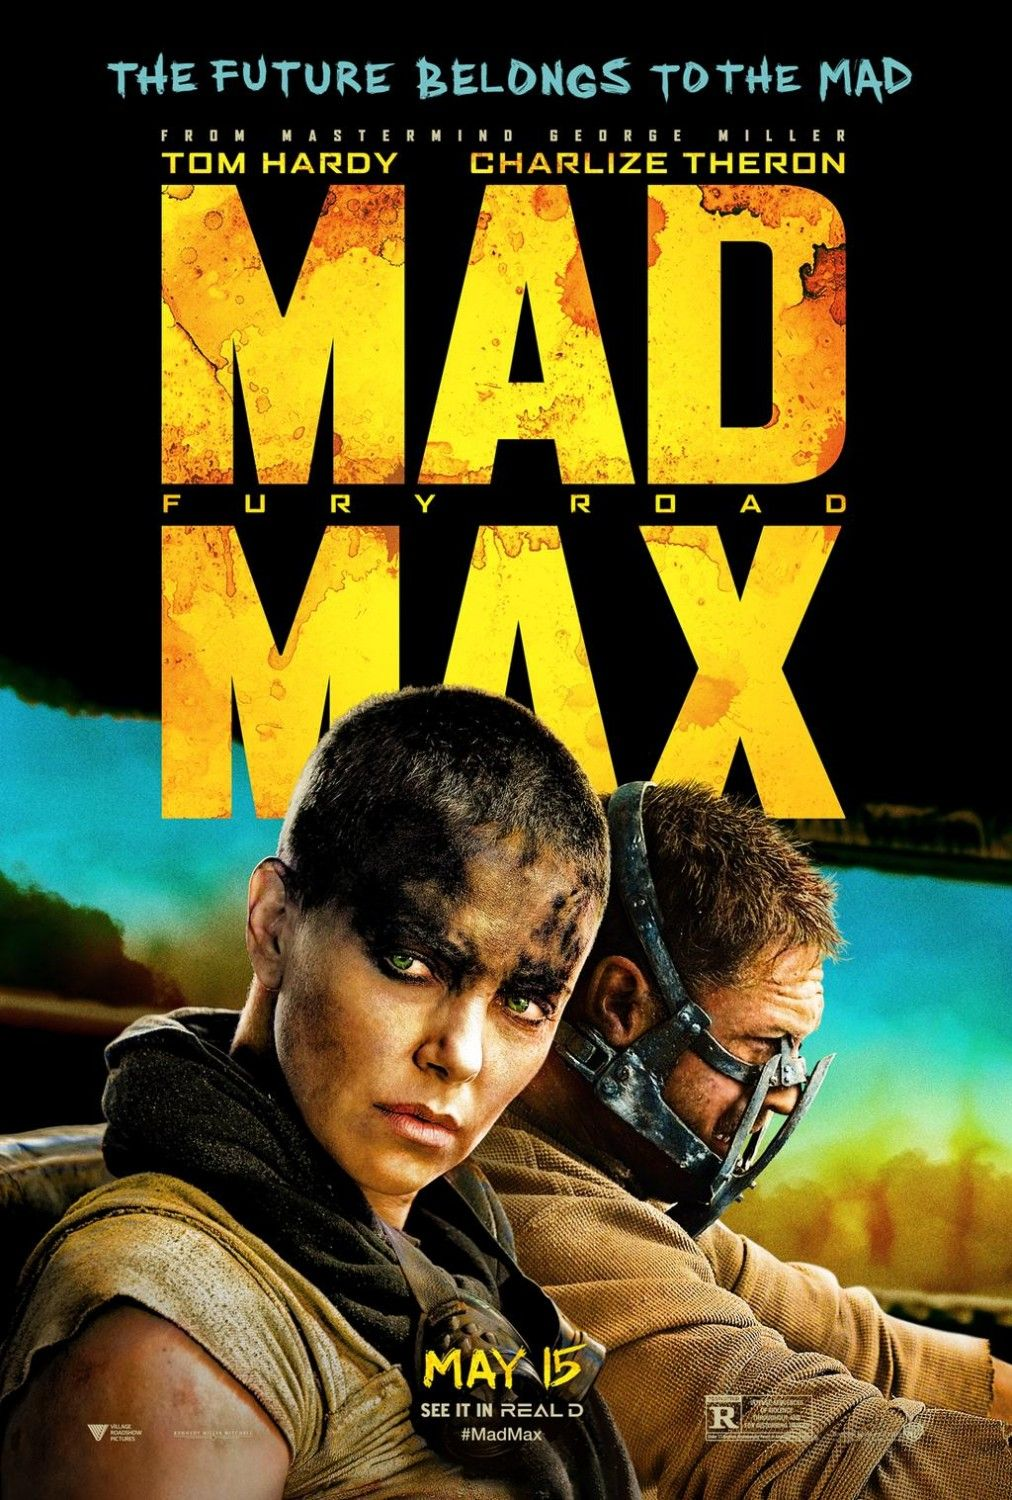 47e2e61421257 My Thoughts on Mad Max  Fury Road Saw Film